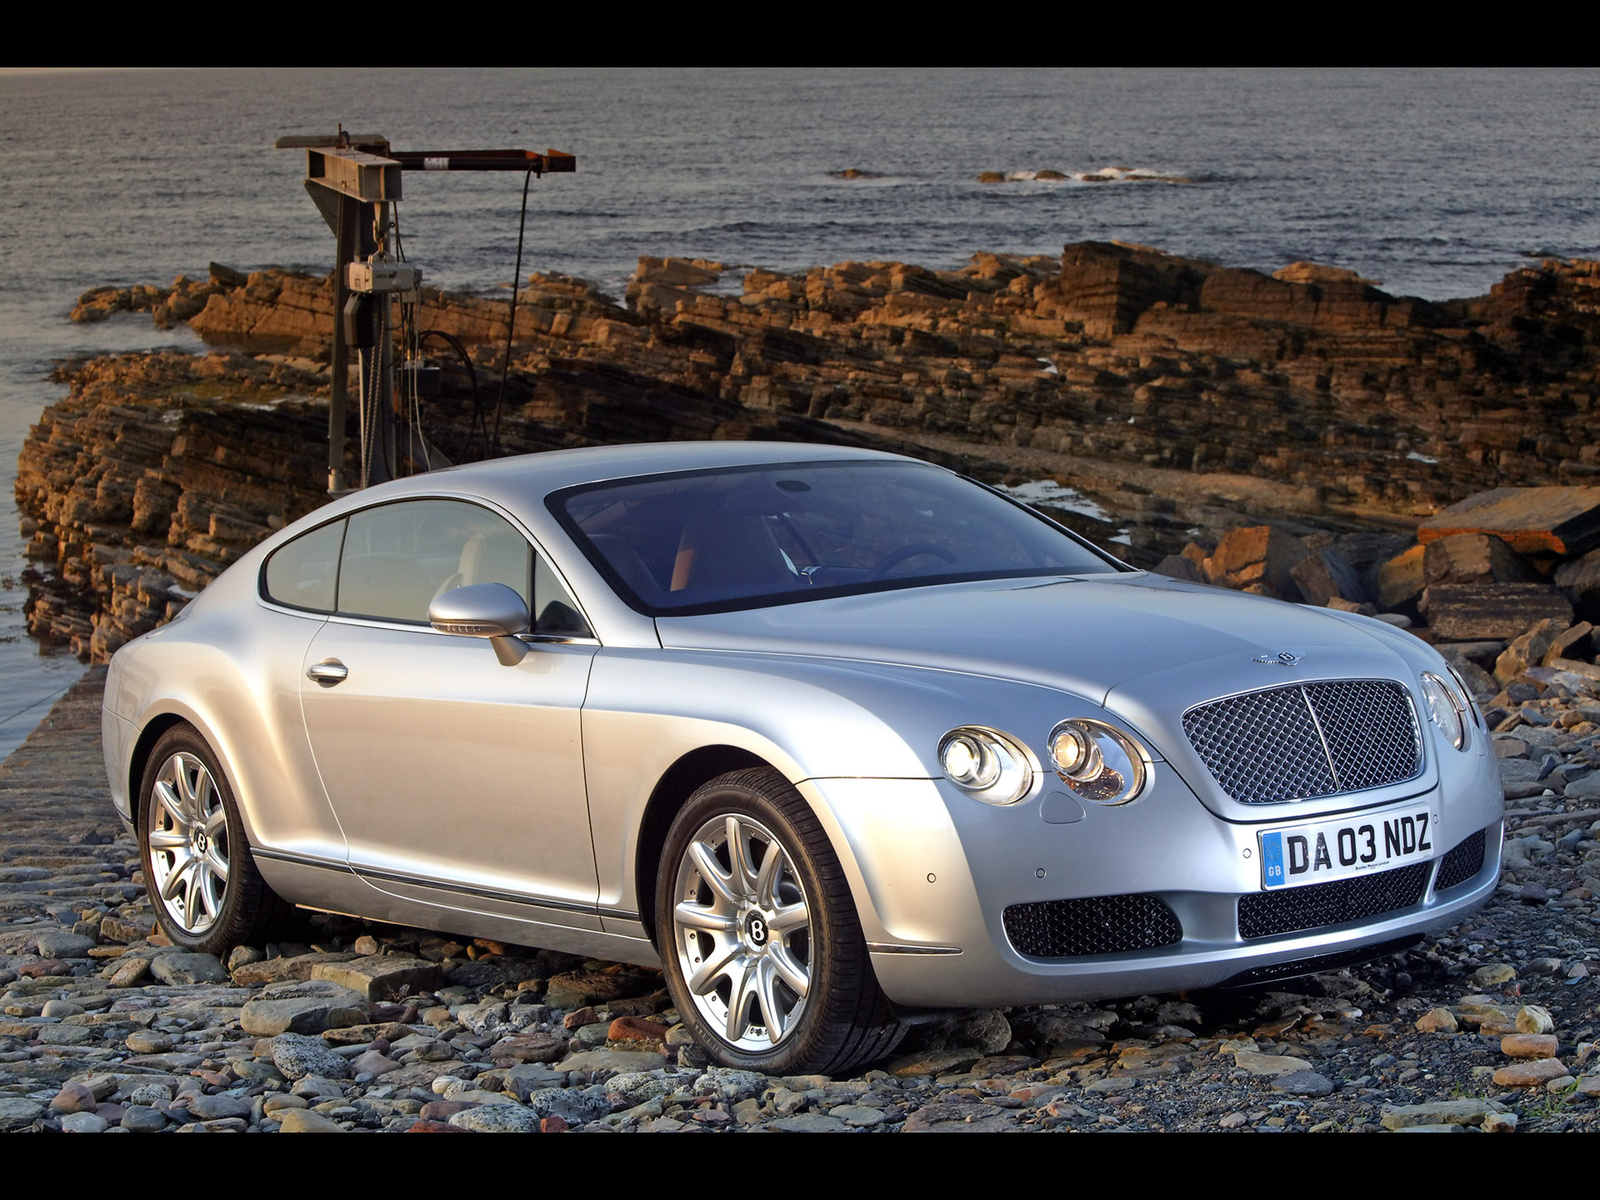 2004 Bentley Continental Gt #1